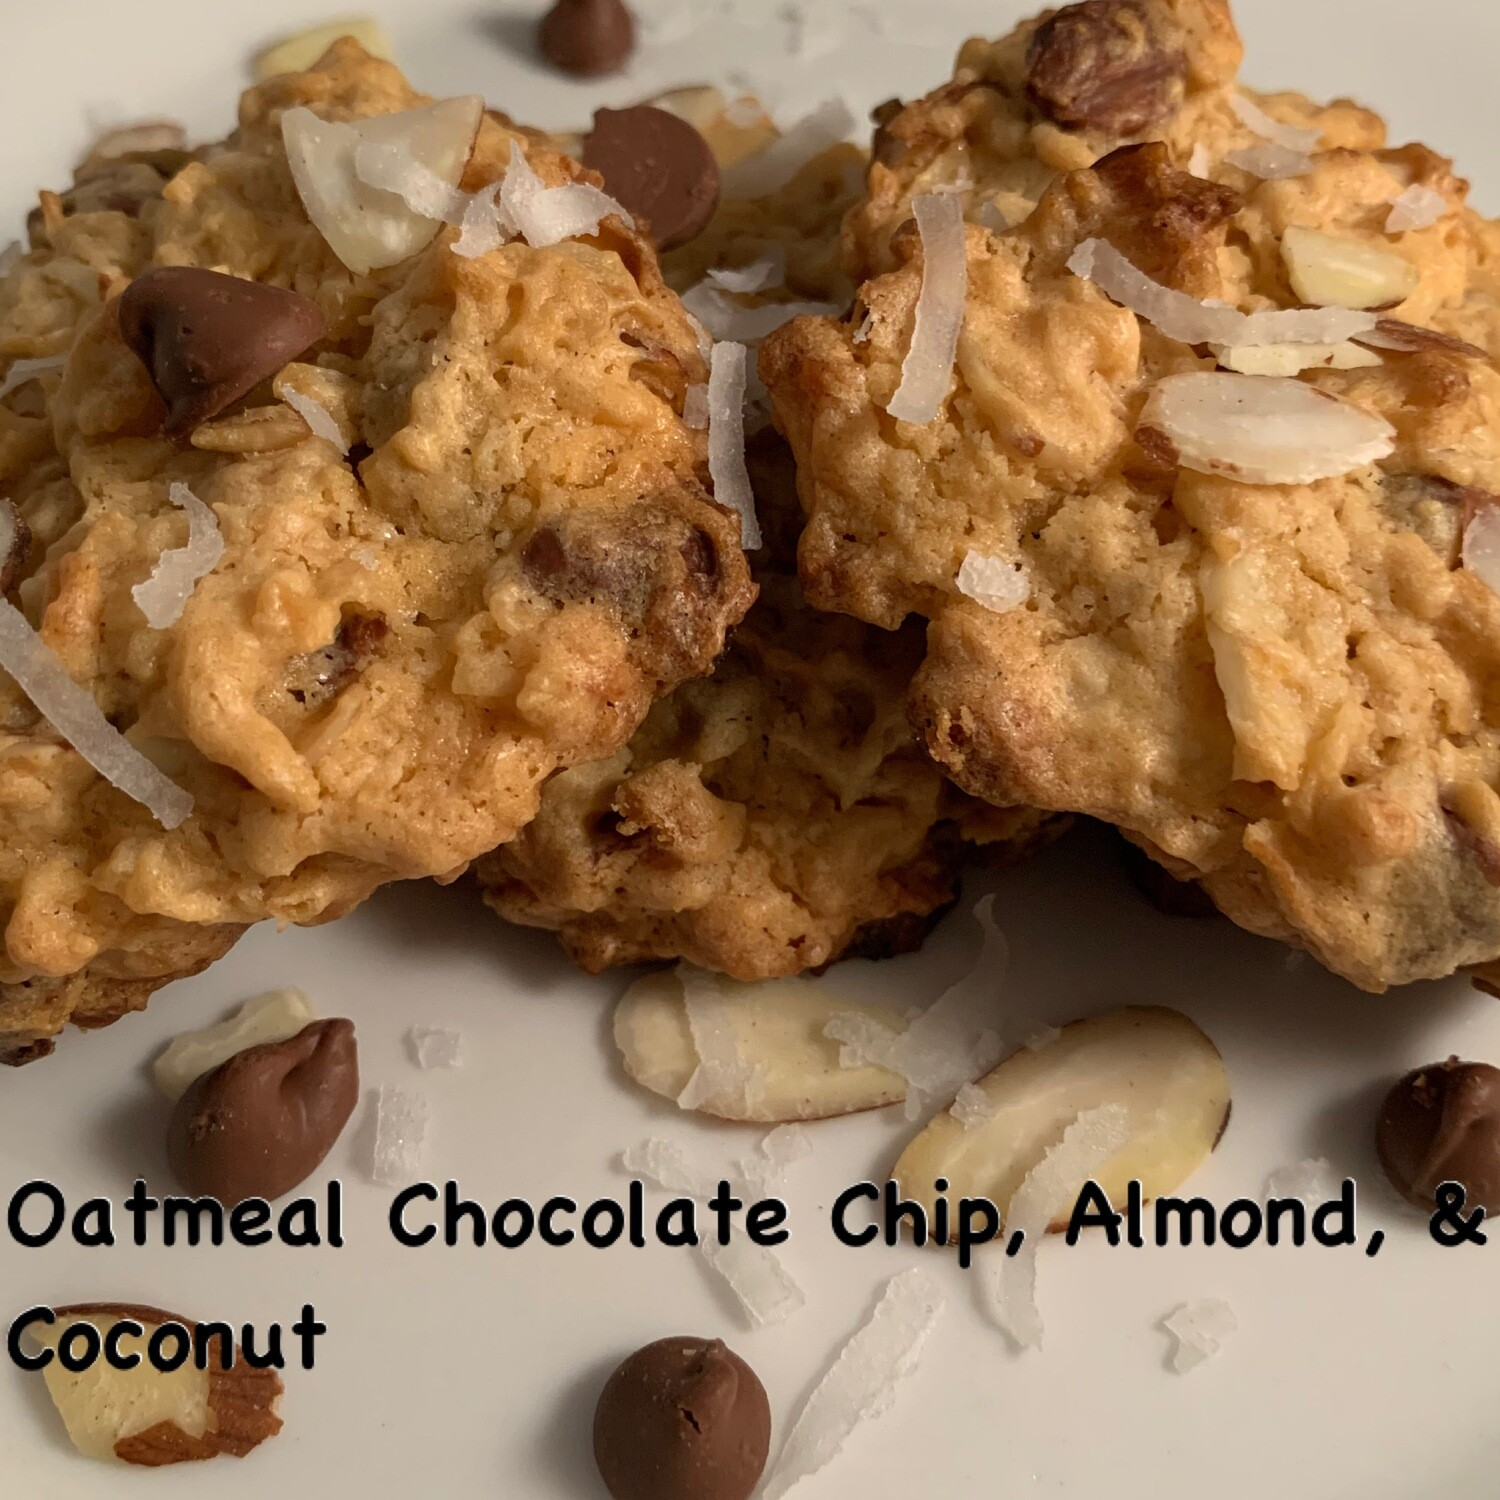 Oatmeal Chocolate Chip, Almond & Coconut